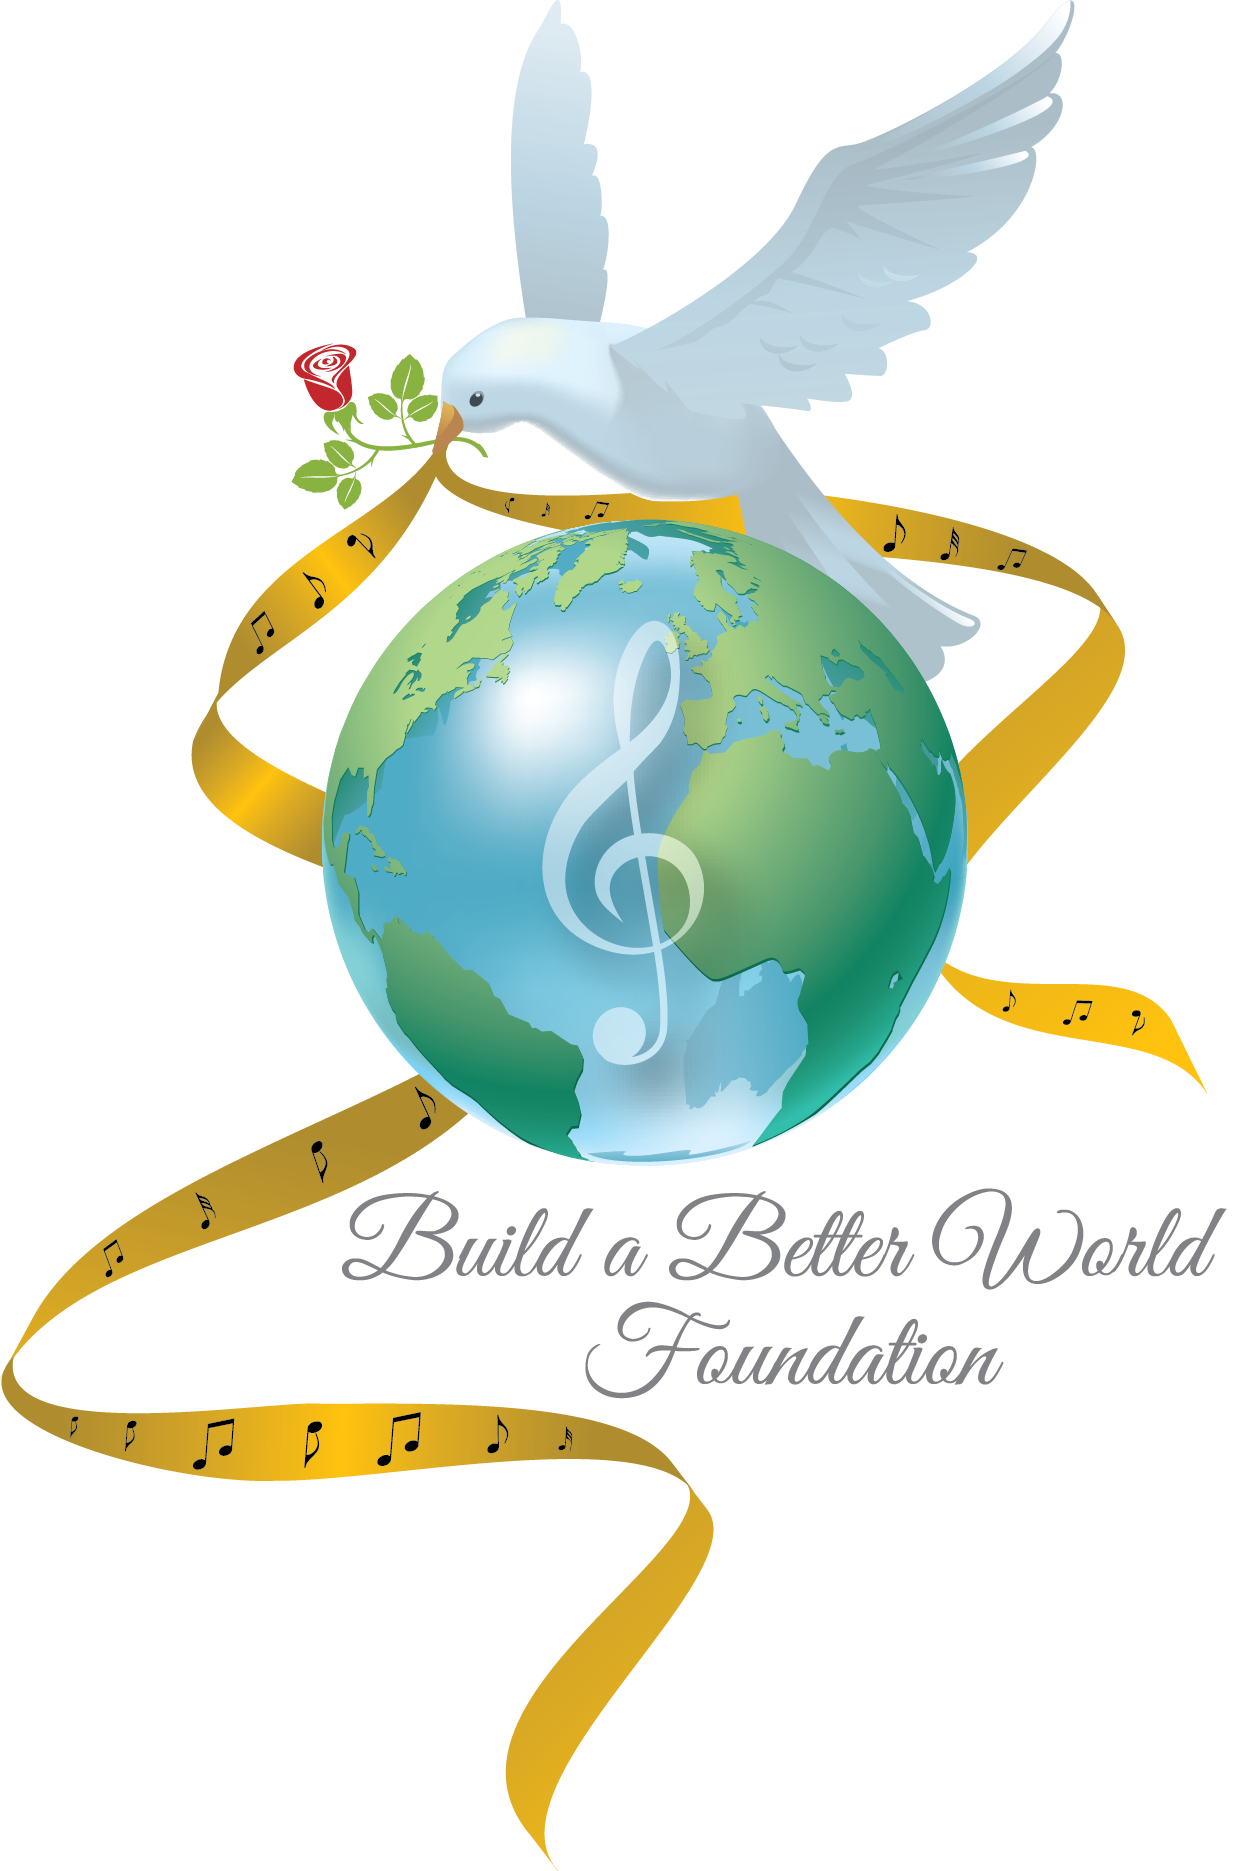 Build a Better World Foundation